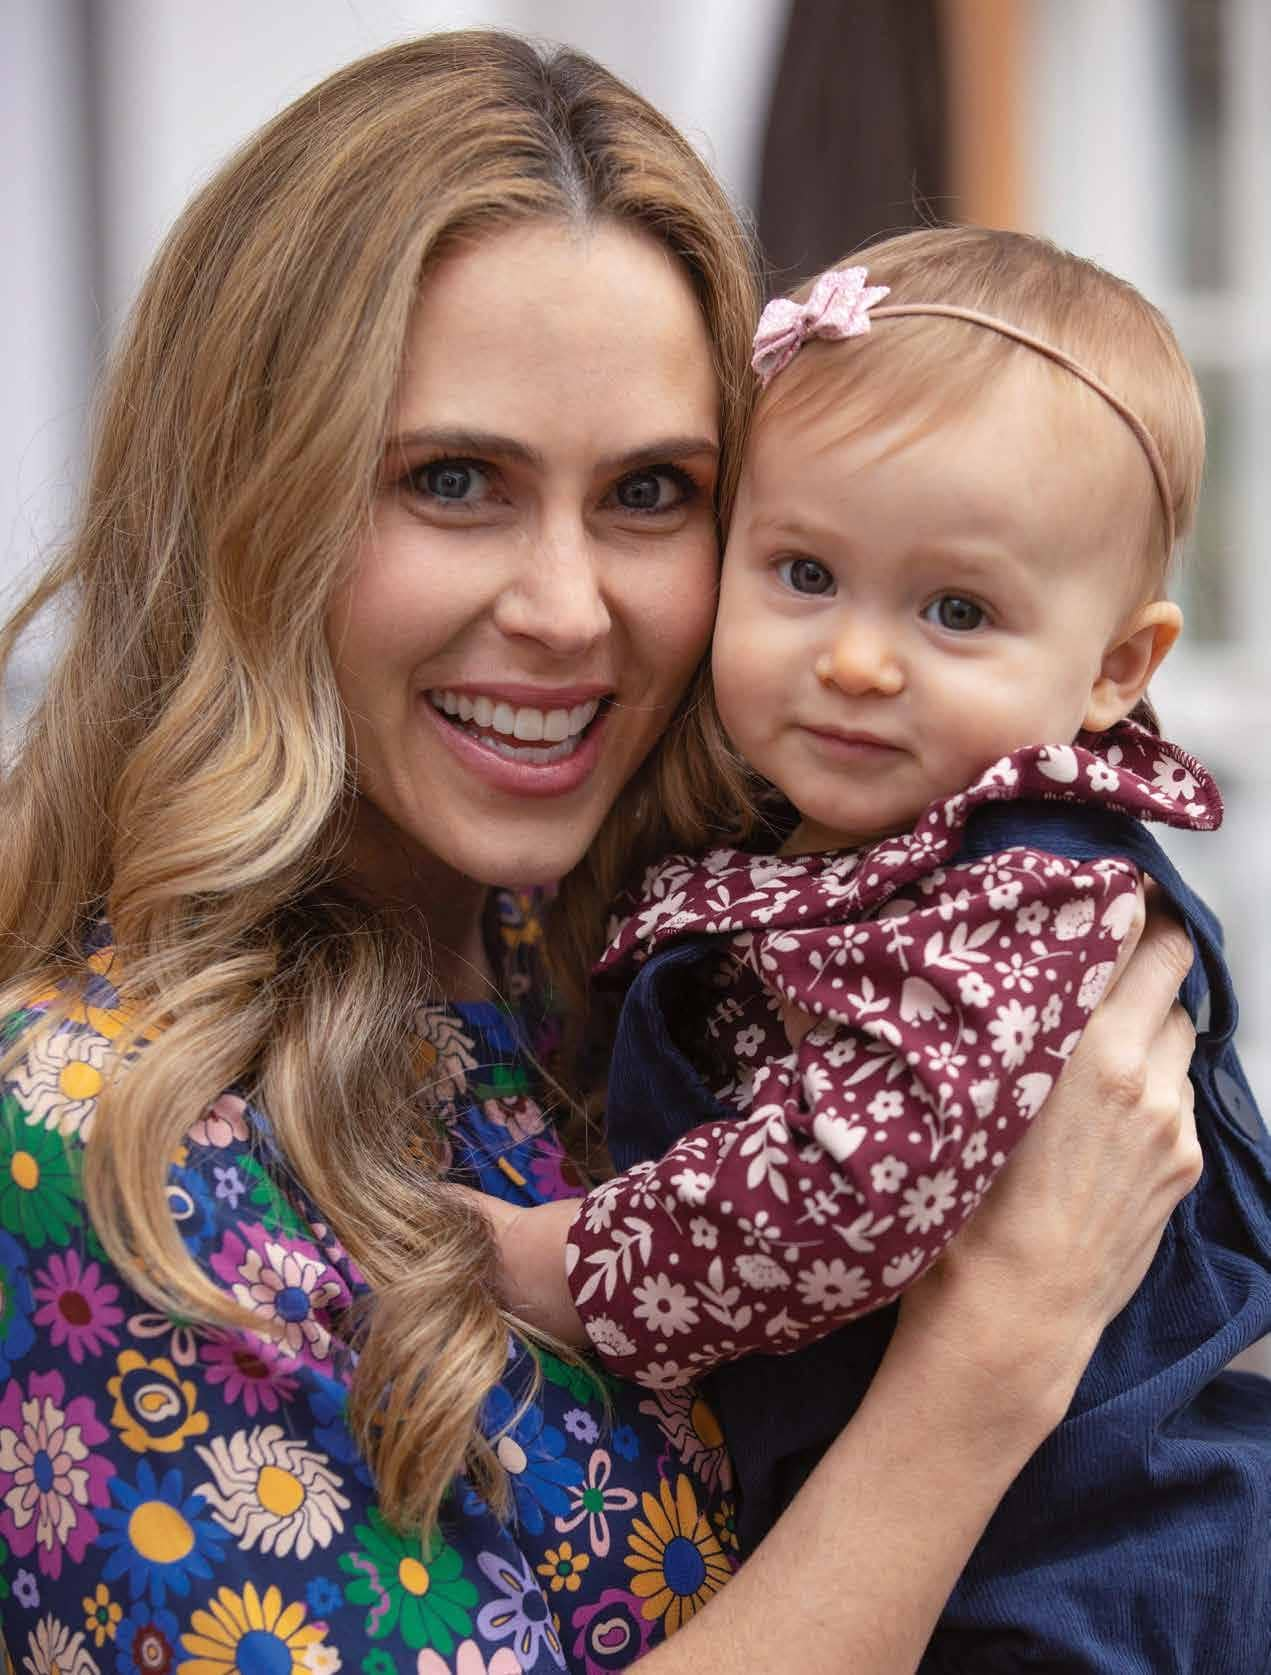 Anna's dream girl 'MY LIFE HAS CHANGED FOREVER!'